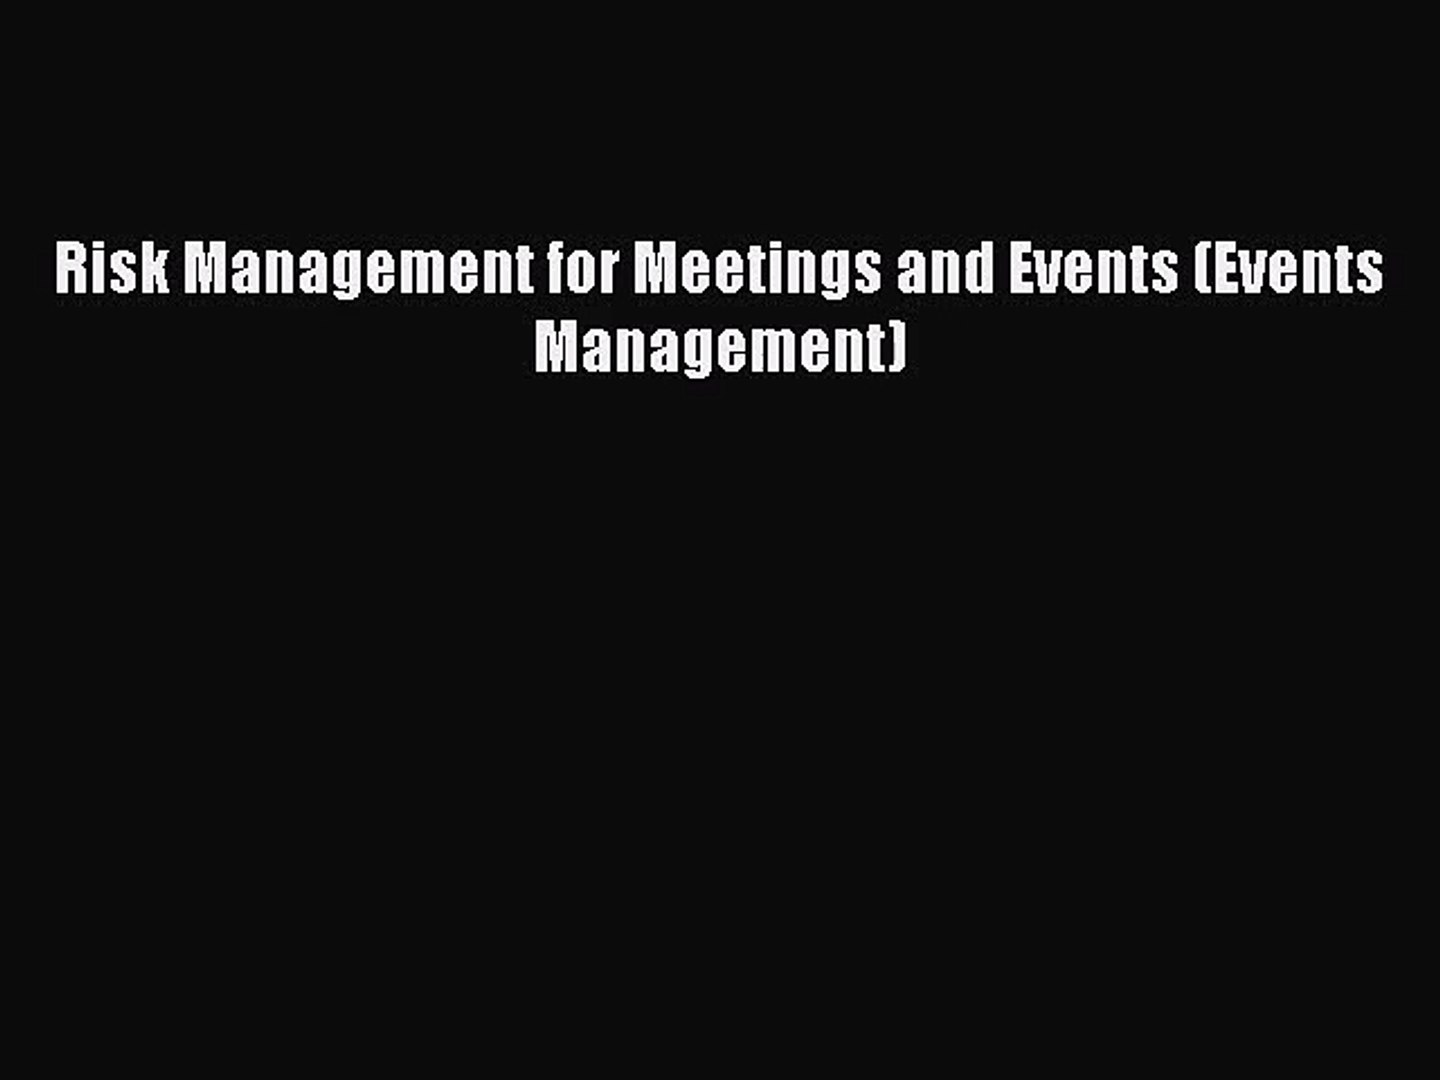 Download Risk Management for Meetings and Events (Events Management) Ebook Free